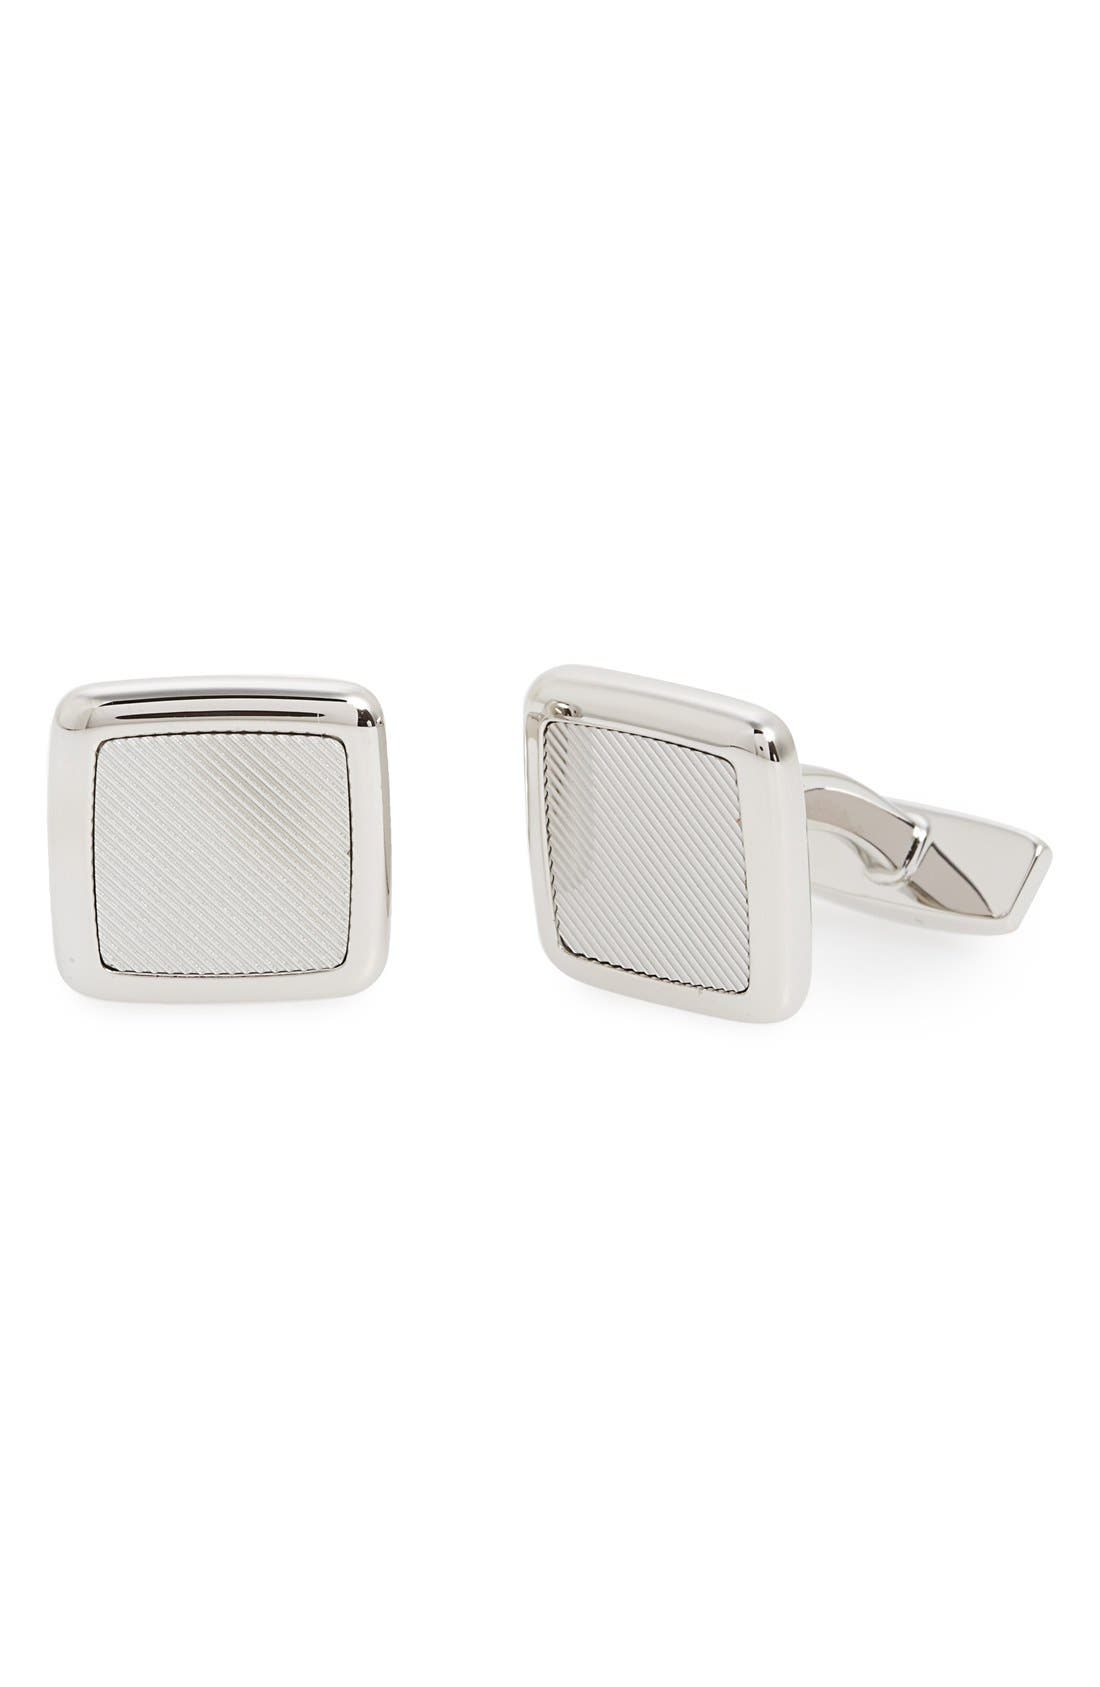 BOSS 'Ennio' Cuff Links